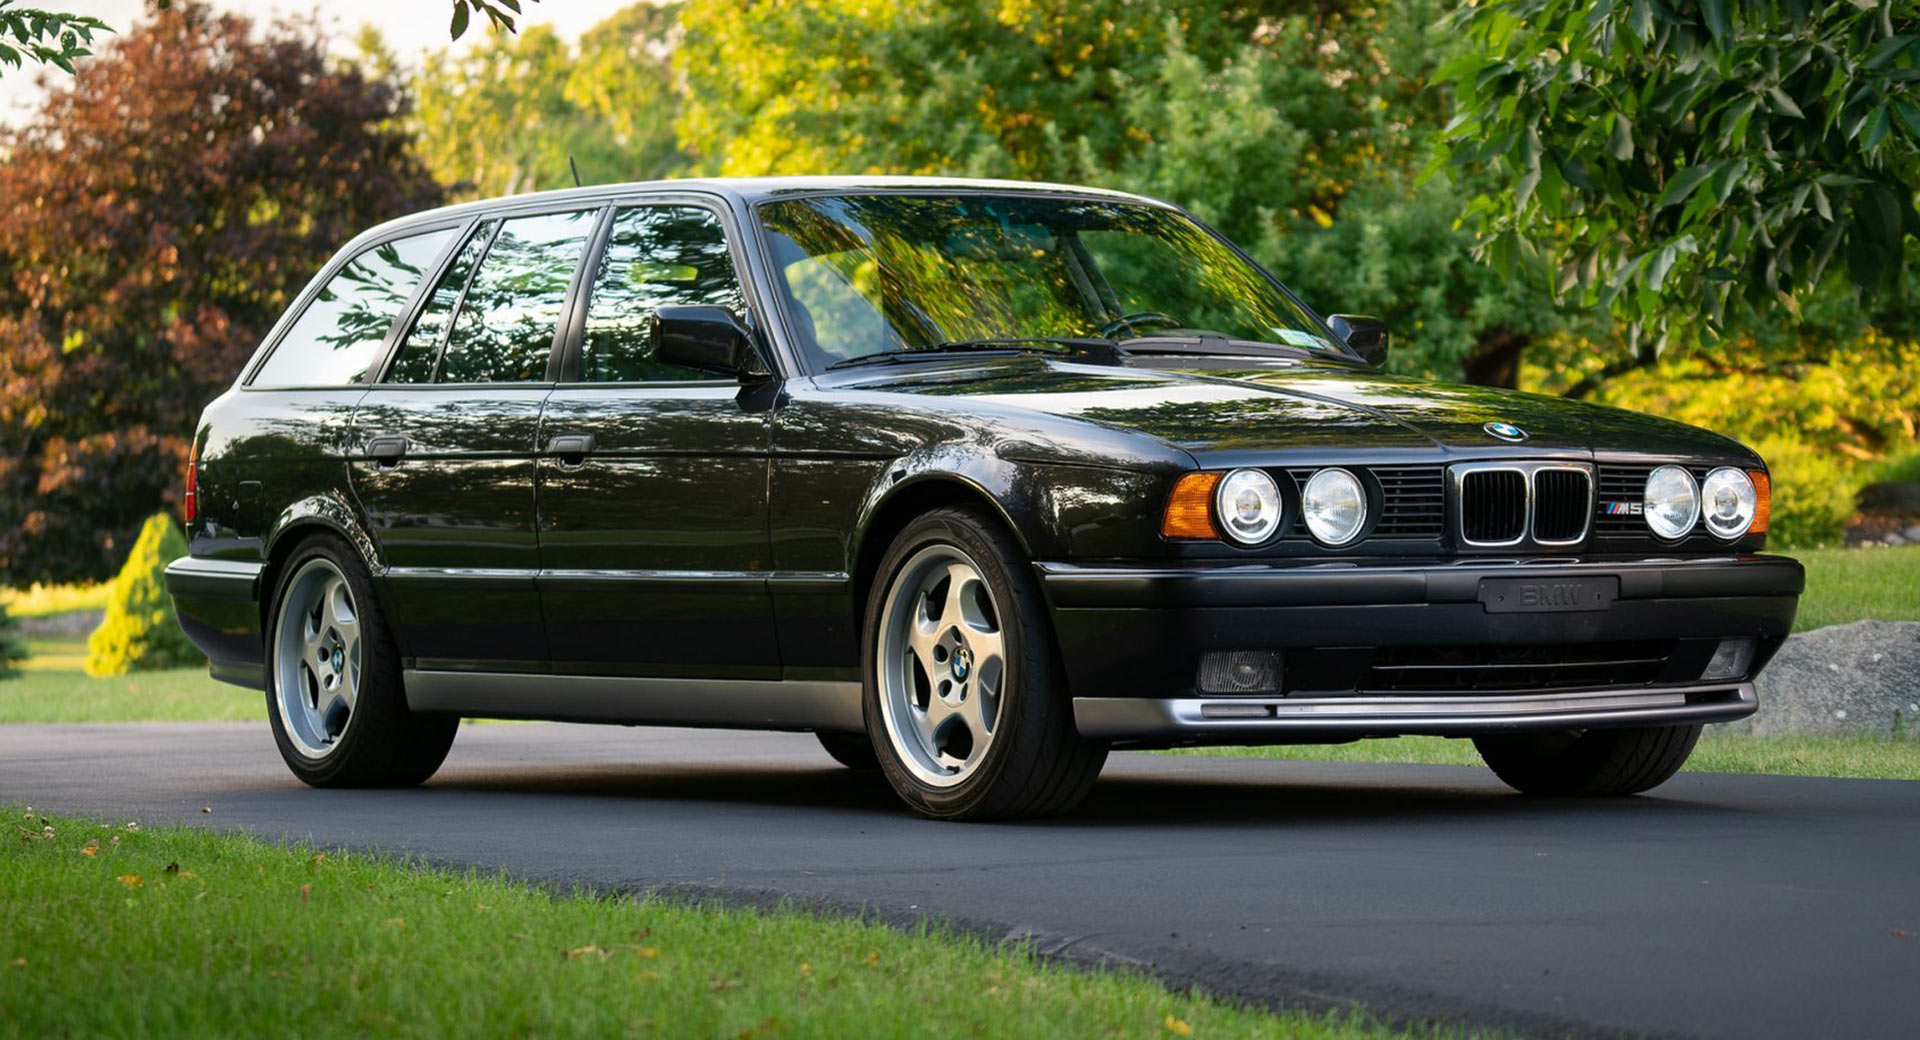 bmw e34 m5 touring is an epic family car from the 1990s and it s for sale in the usa carscoops bmw e34 m5 touring is an epic family